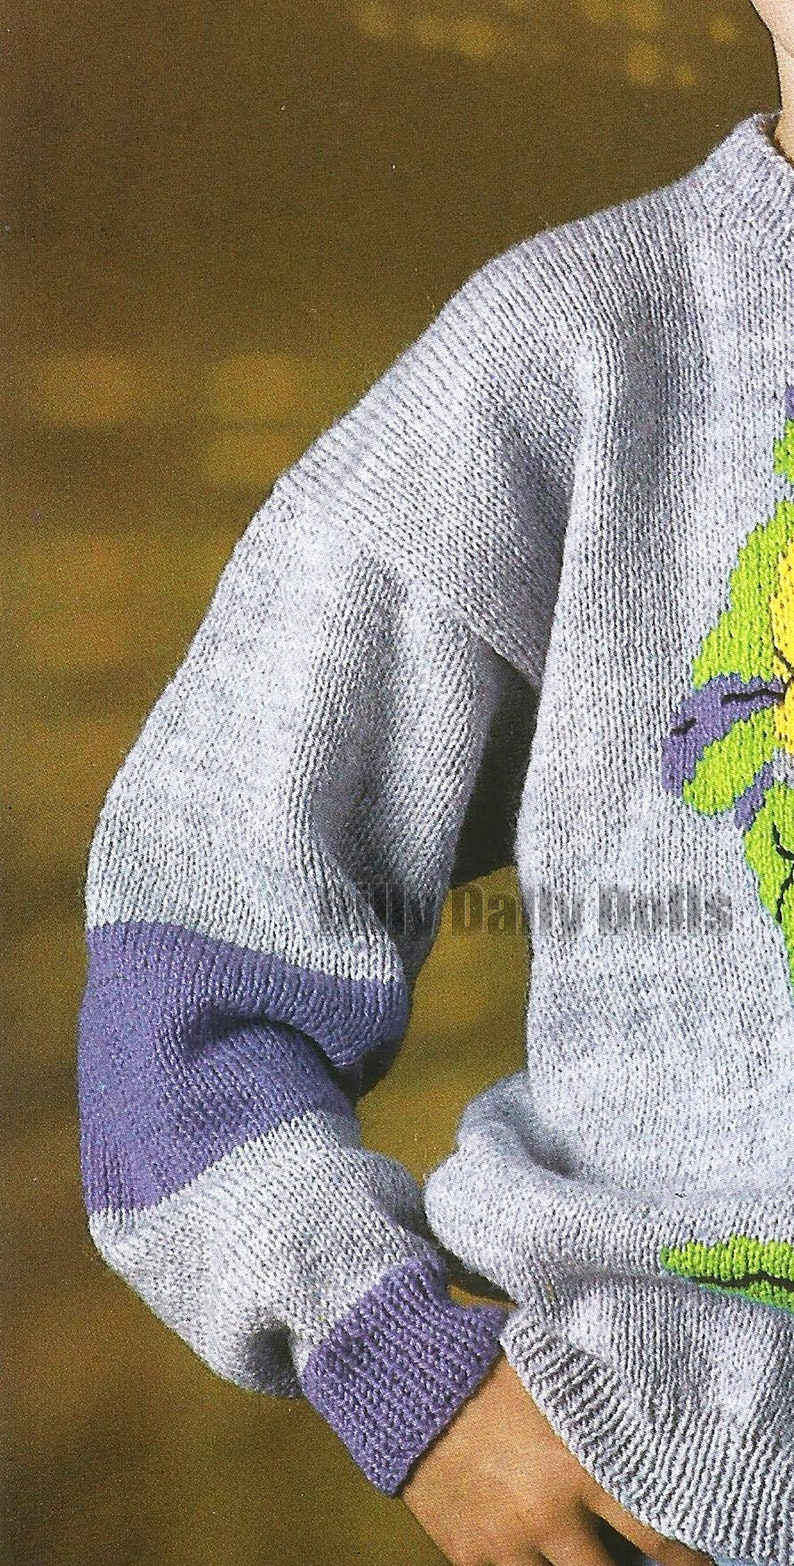 Donatello Teenage Mutant Hero Turtles sweater knitting Pattern in Double Knit yarn to fit 26 to 40 inch chest